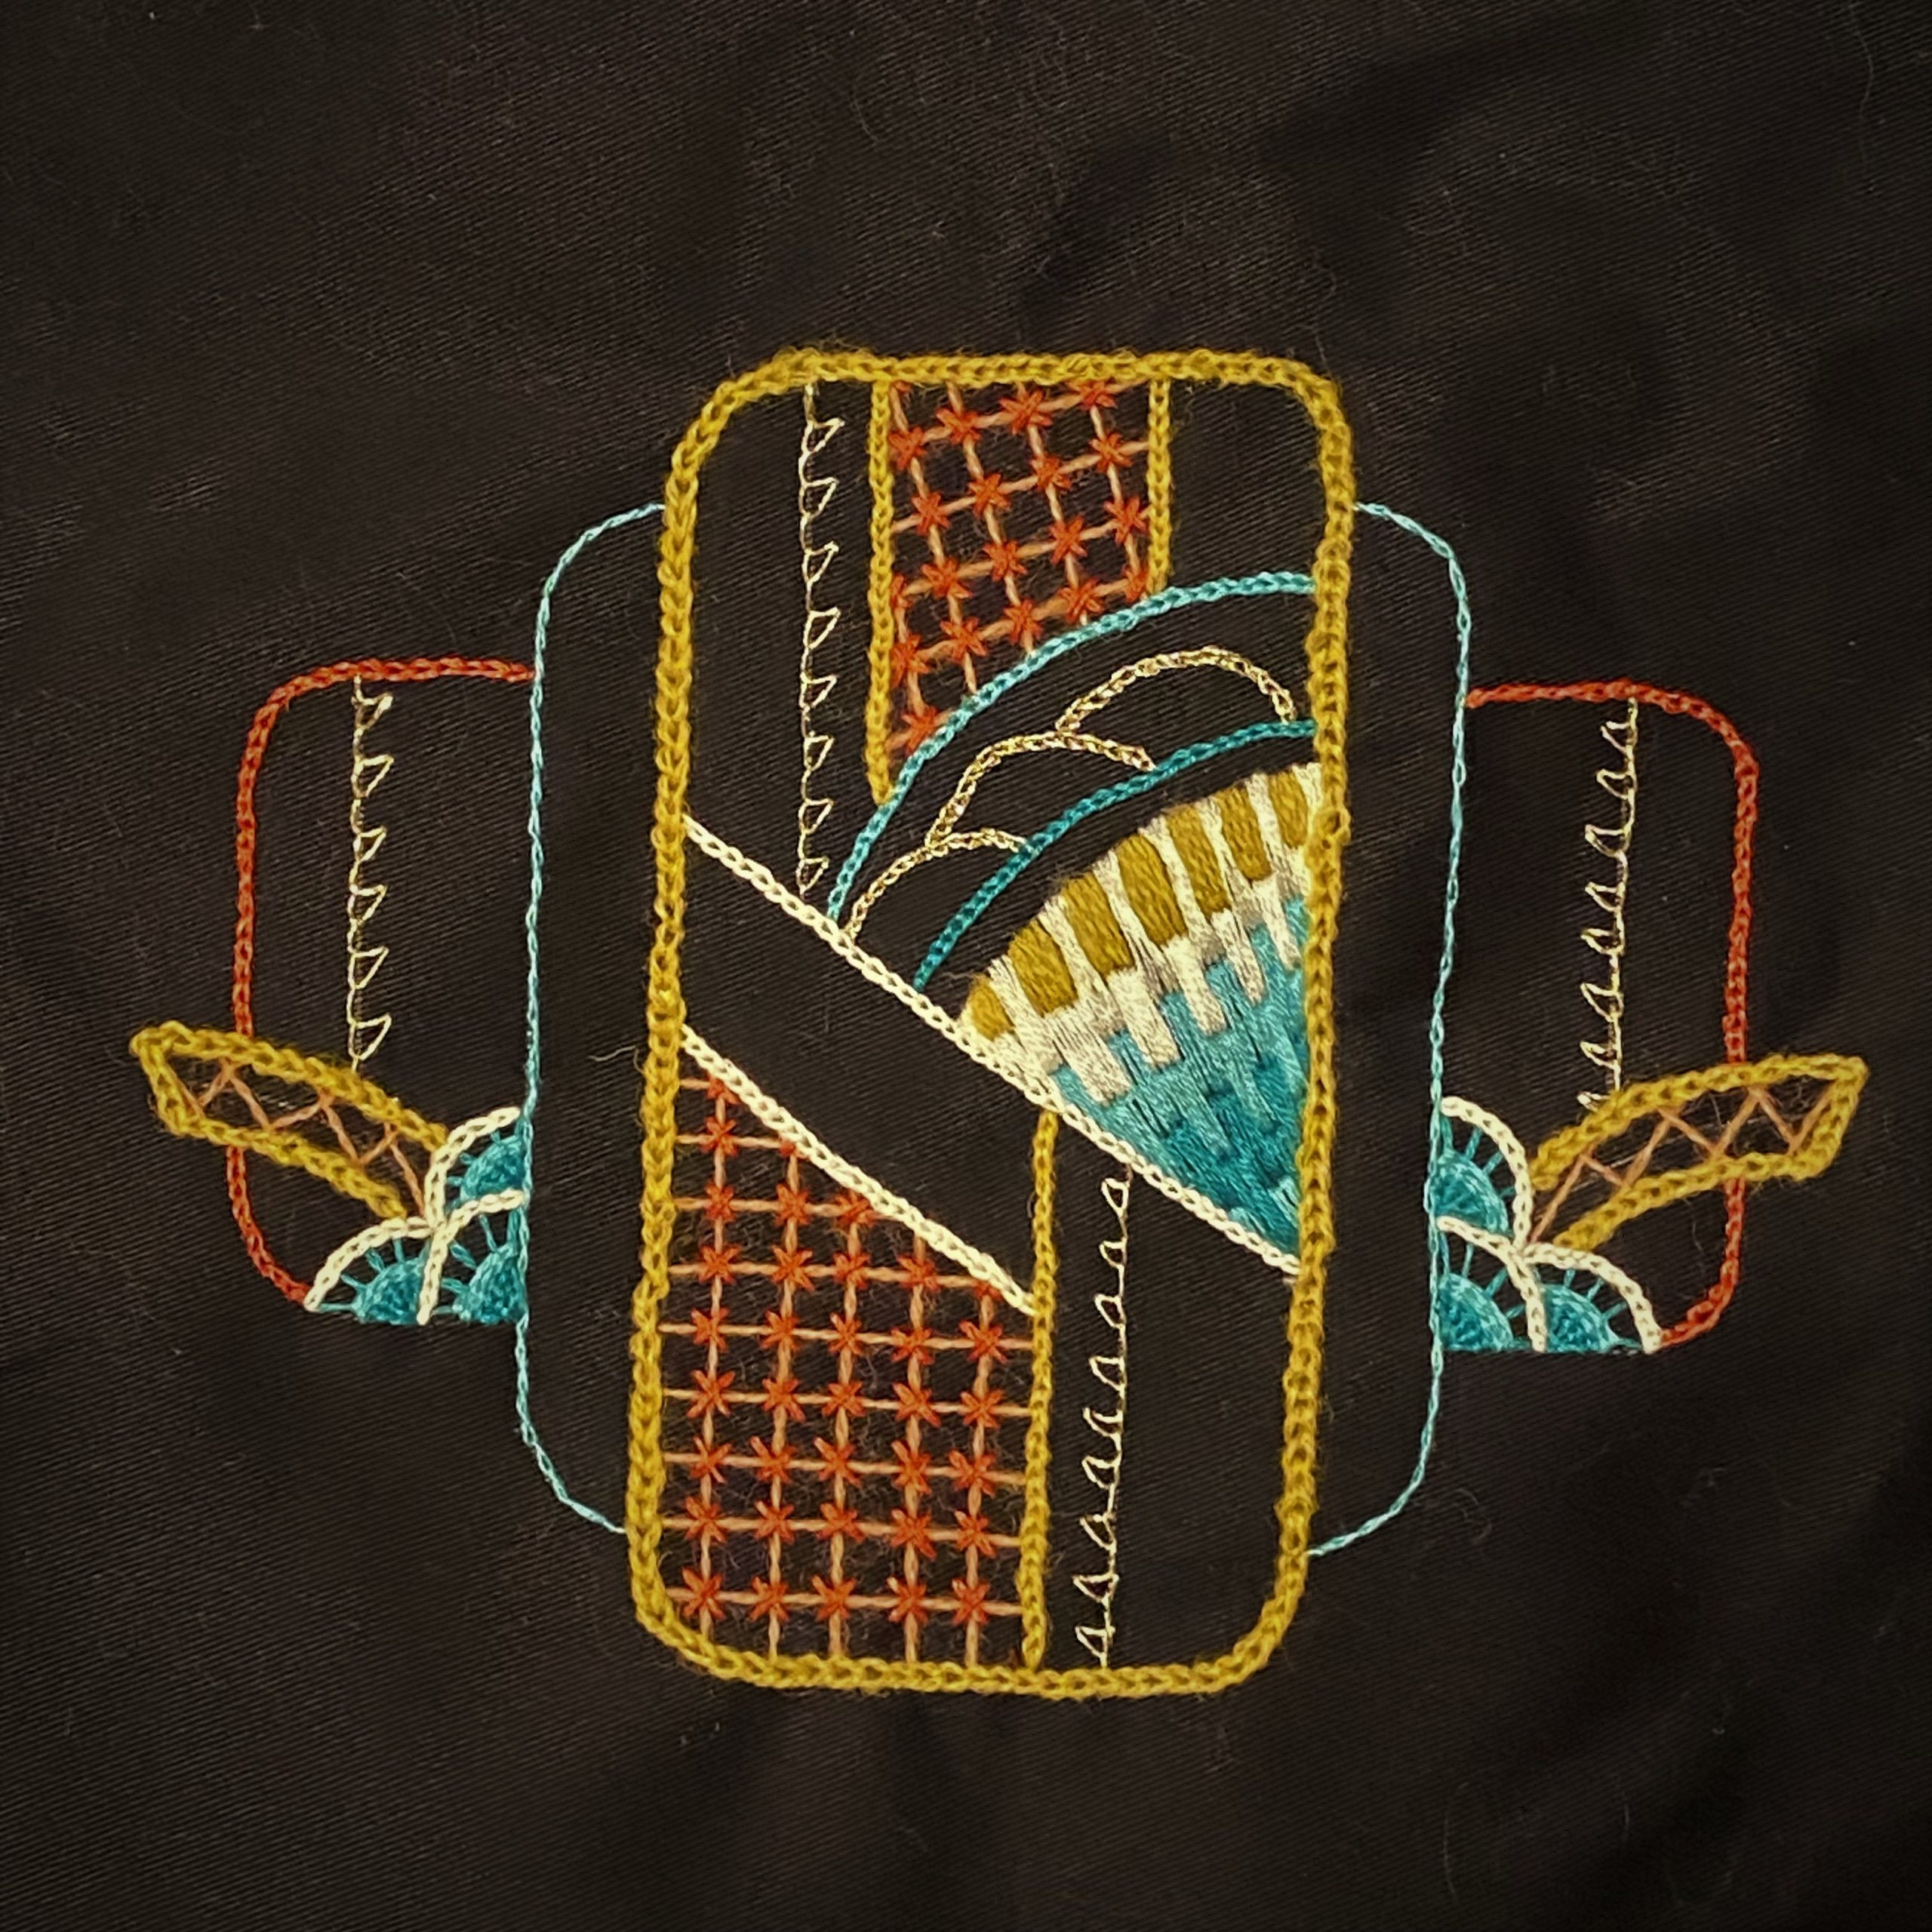 Intro to Embroidery: Geometric, by Mary Corey March, CA, USA 1